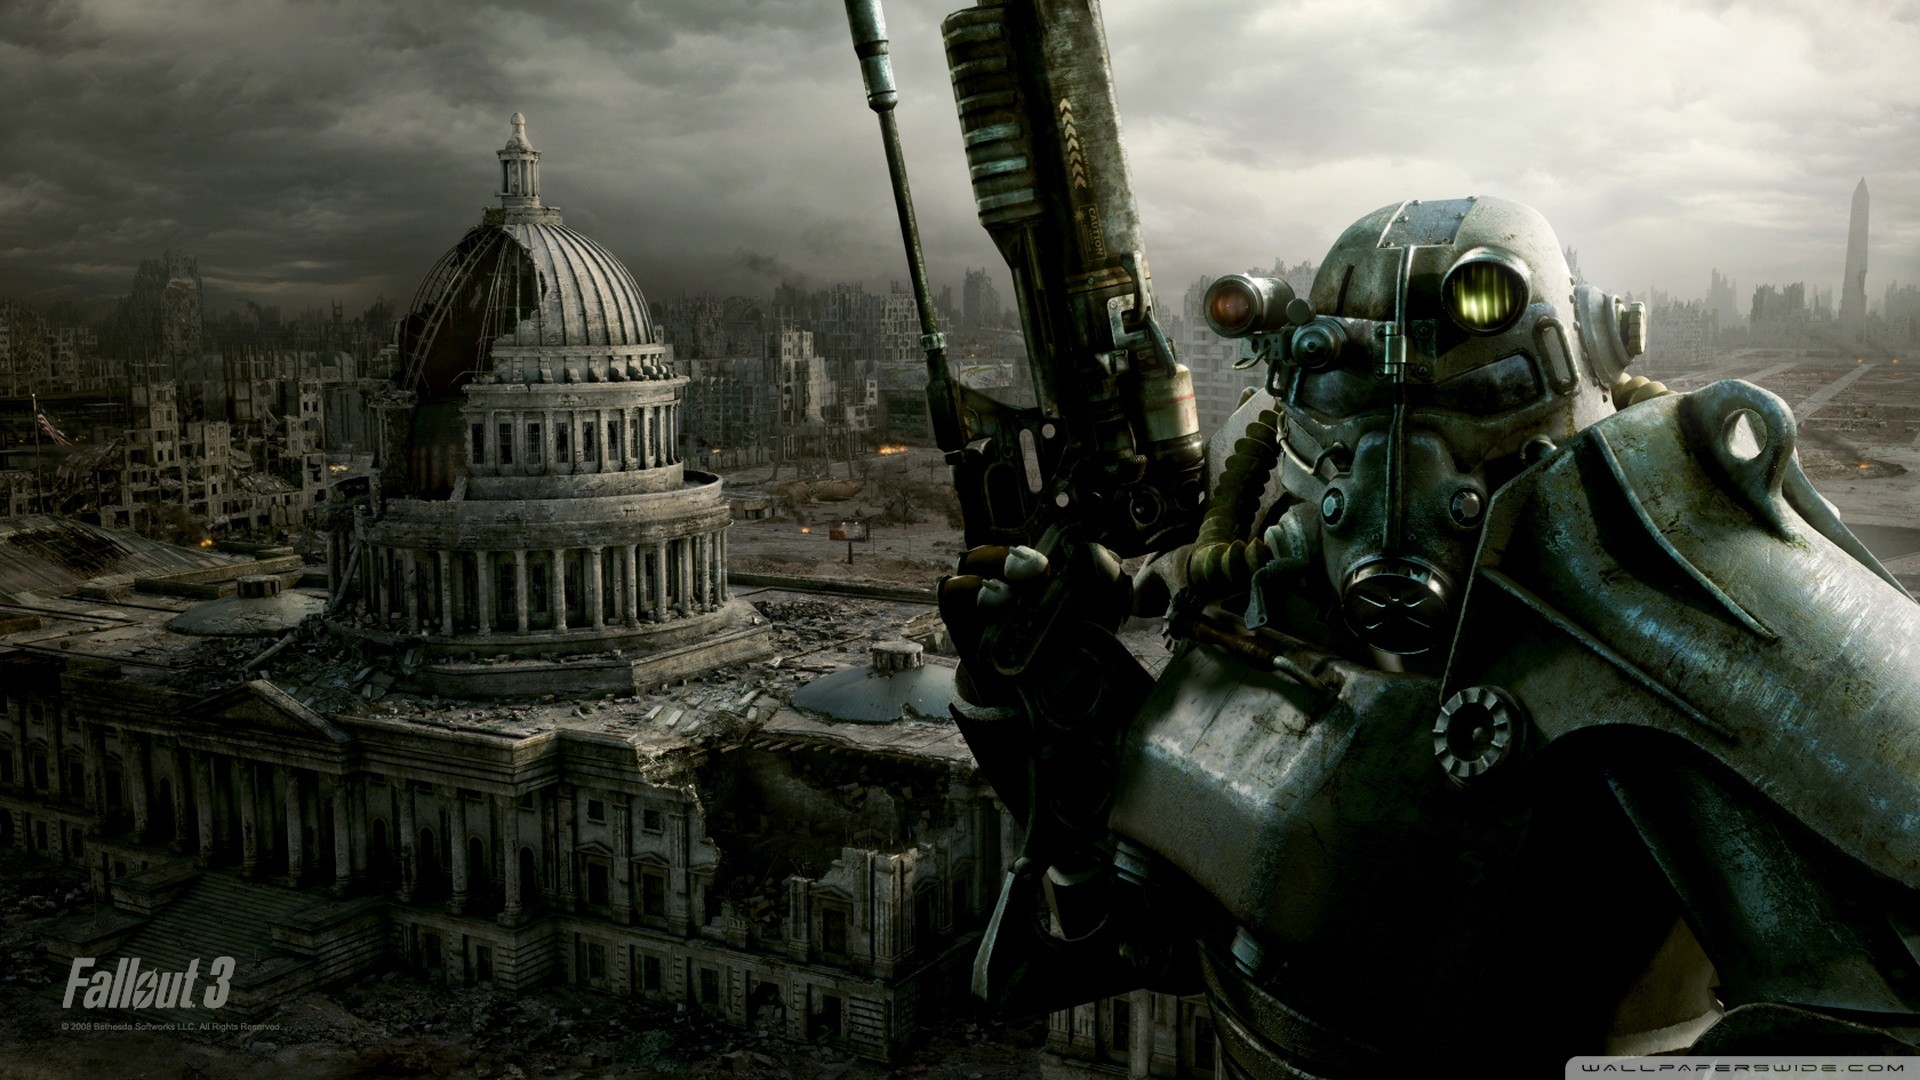 1920x1080 Fallout 3 Desktop Wallpapers